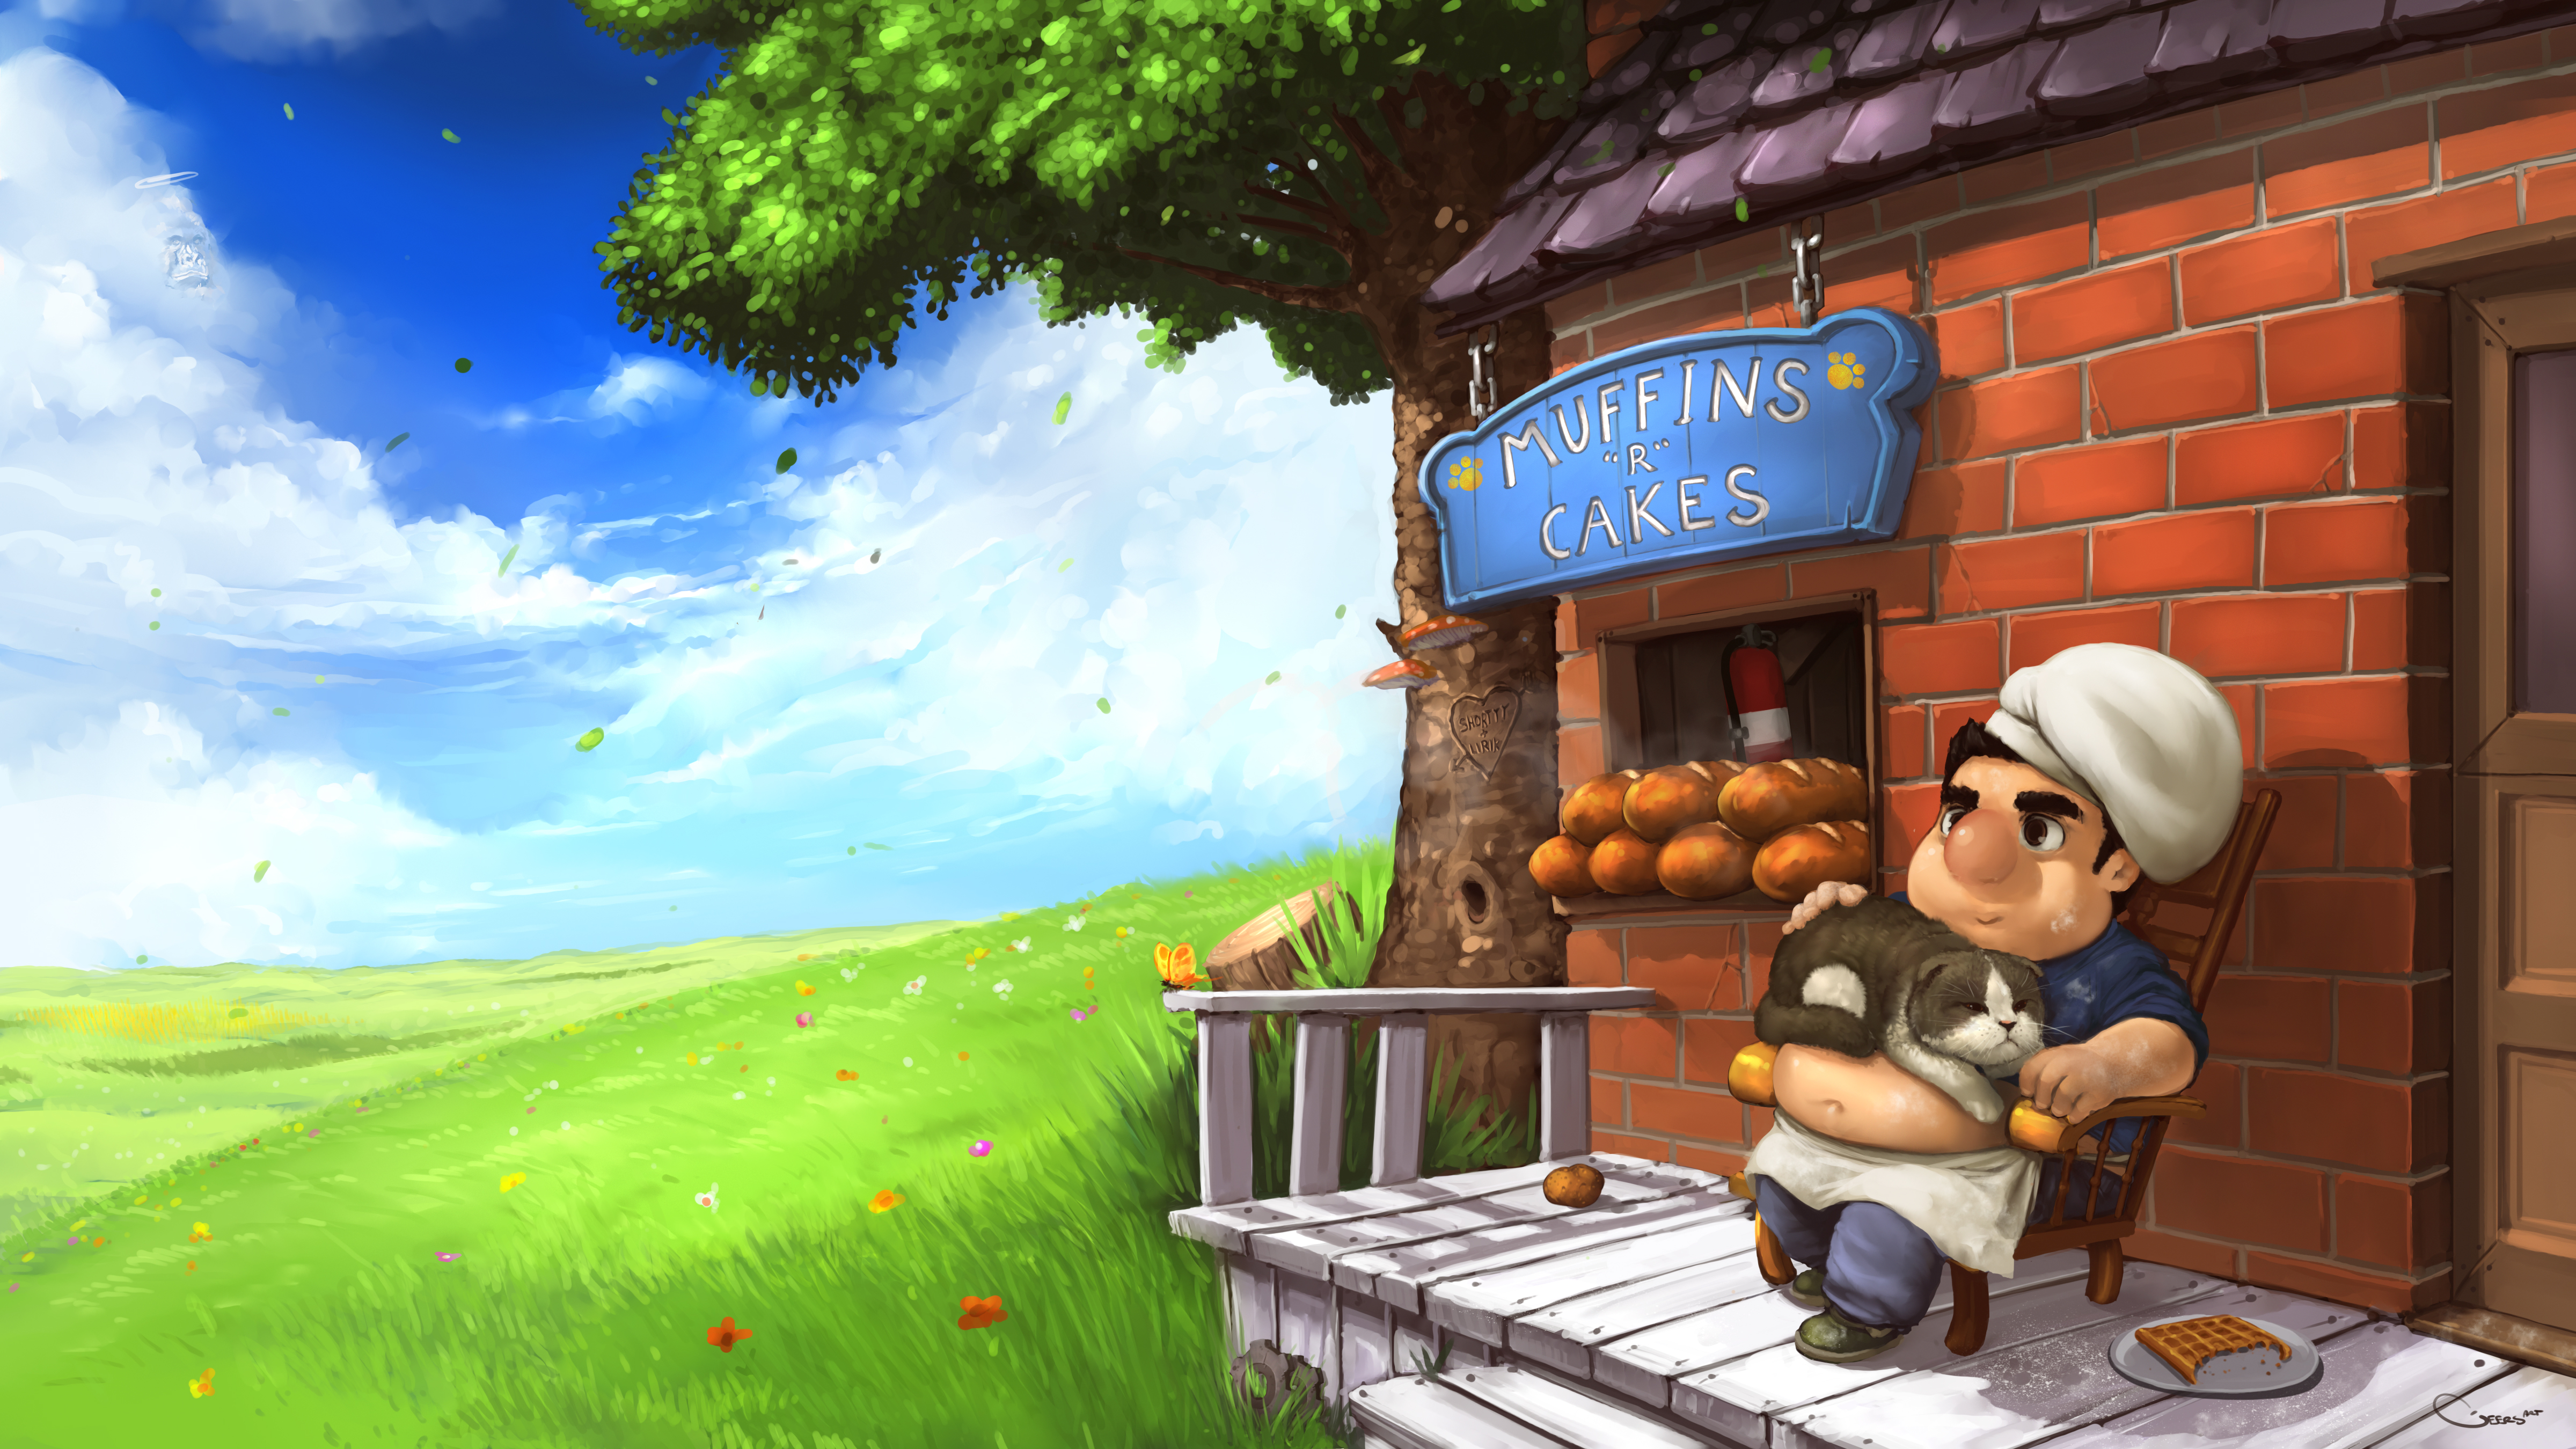 Liriks Bakery By Darrengeers On Deviantart HD Wallpapers Download Free Images Wallpaper [1000image.com]